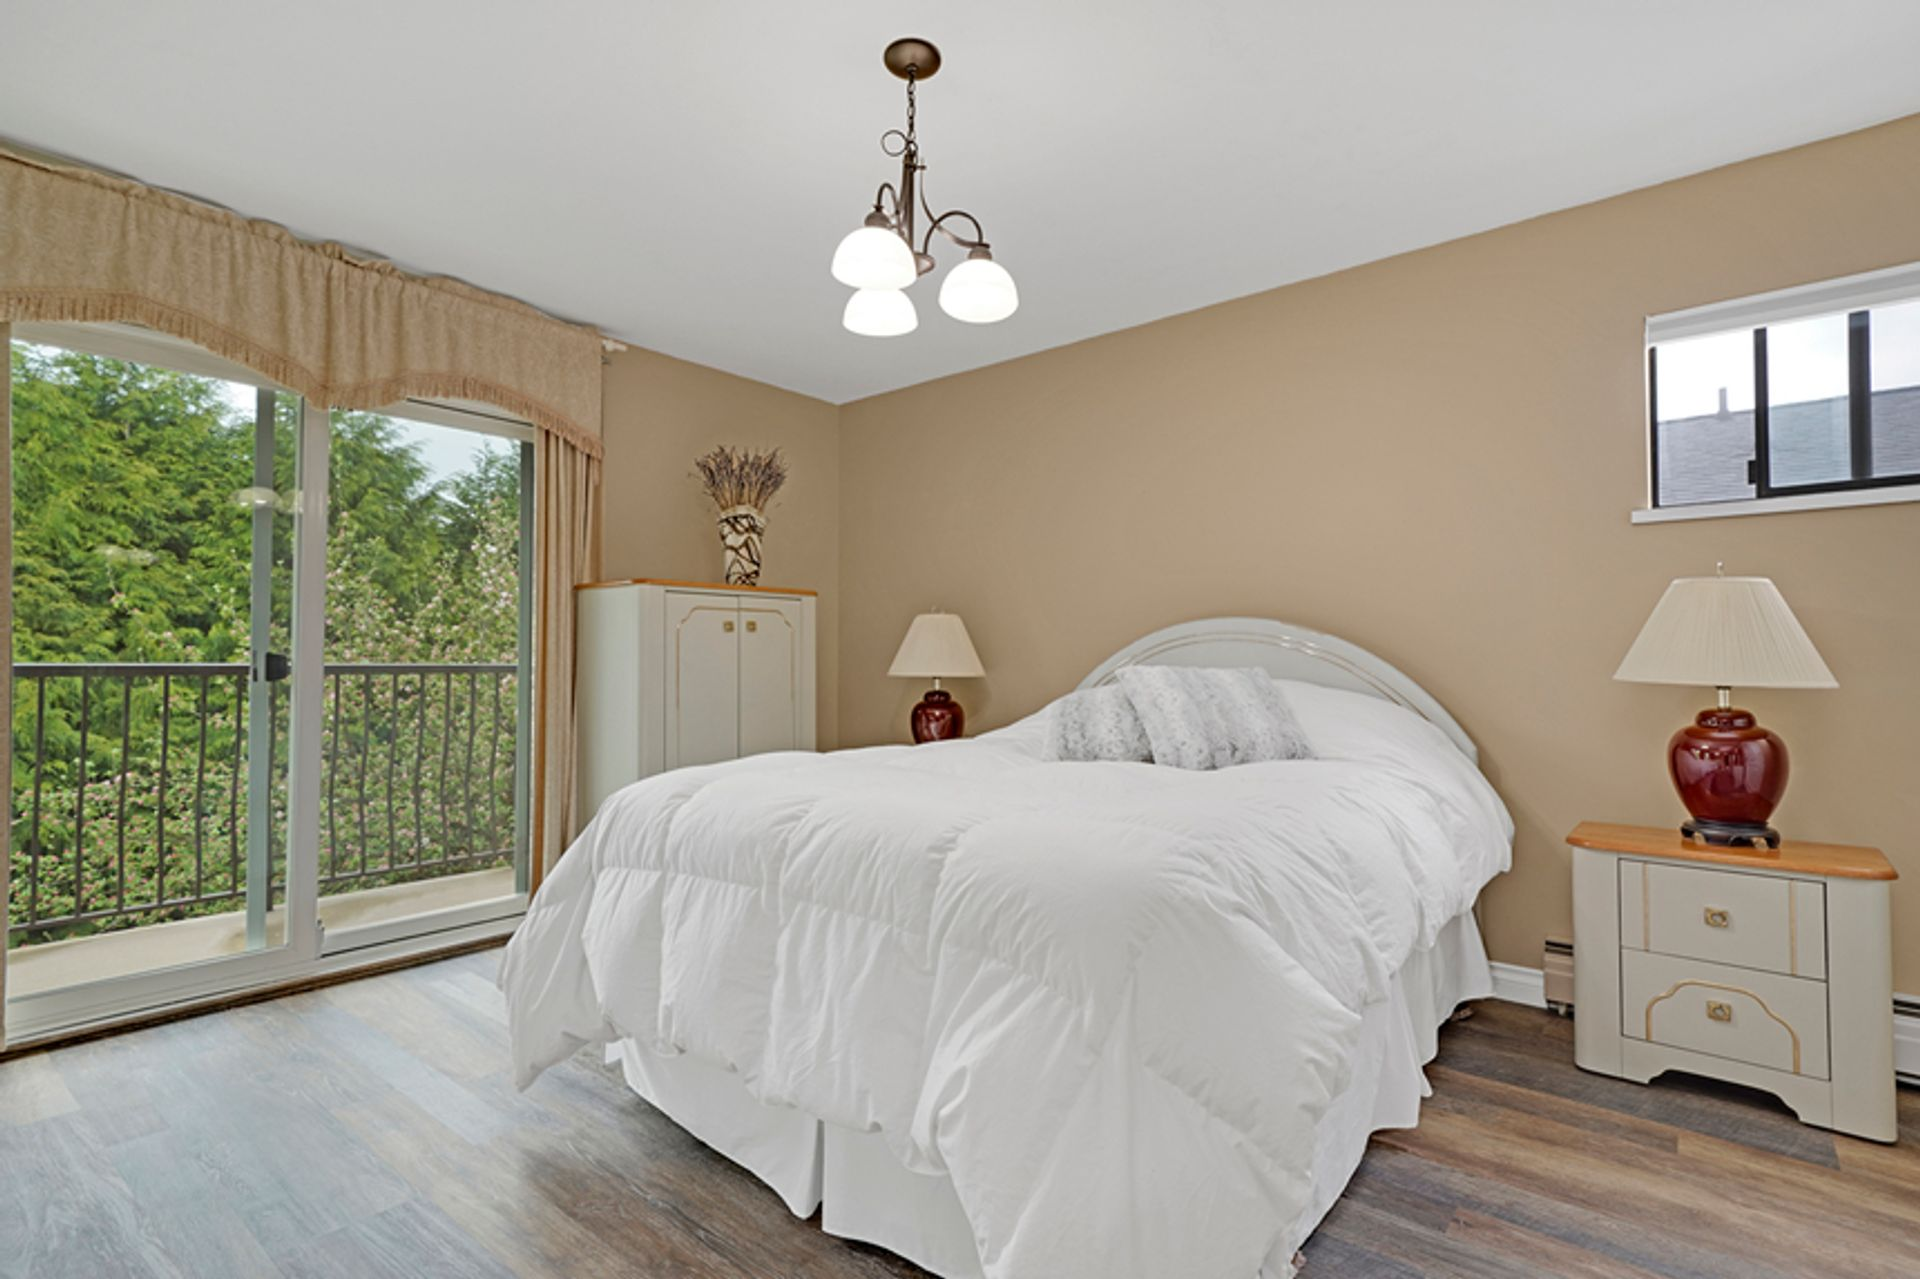 3a-above-master-bedroom-20 at 836 Irvine Street, Meadow Brook, Coquitlam